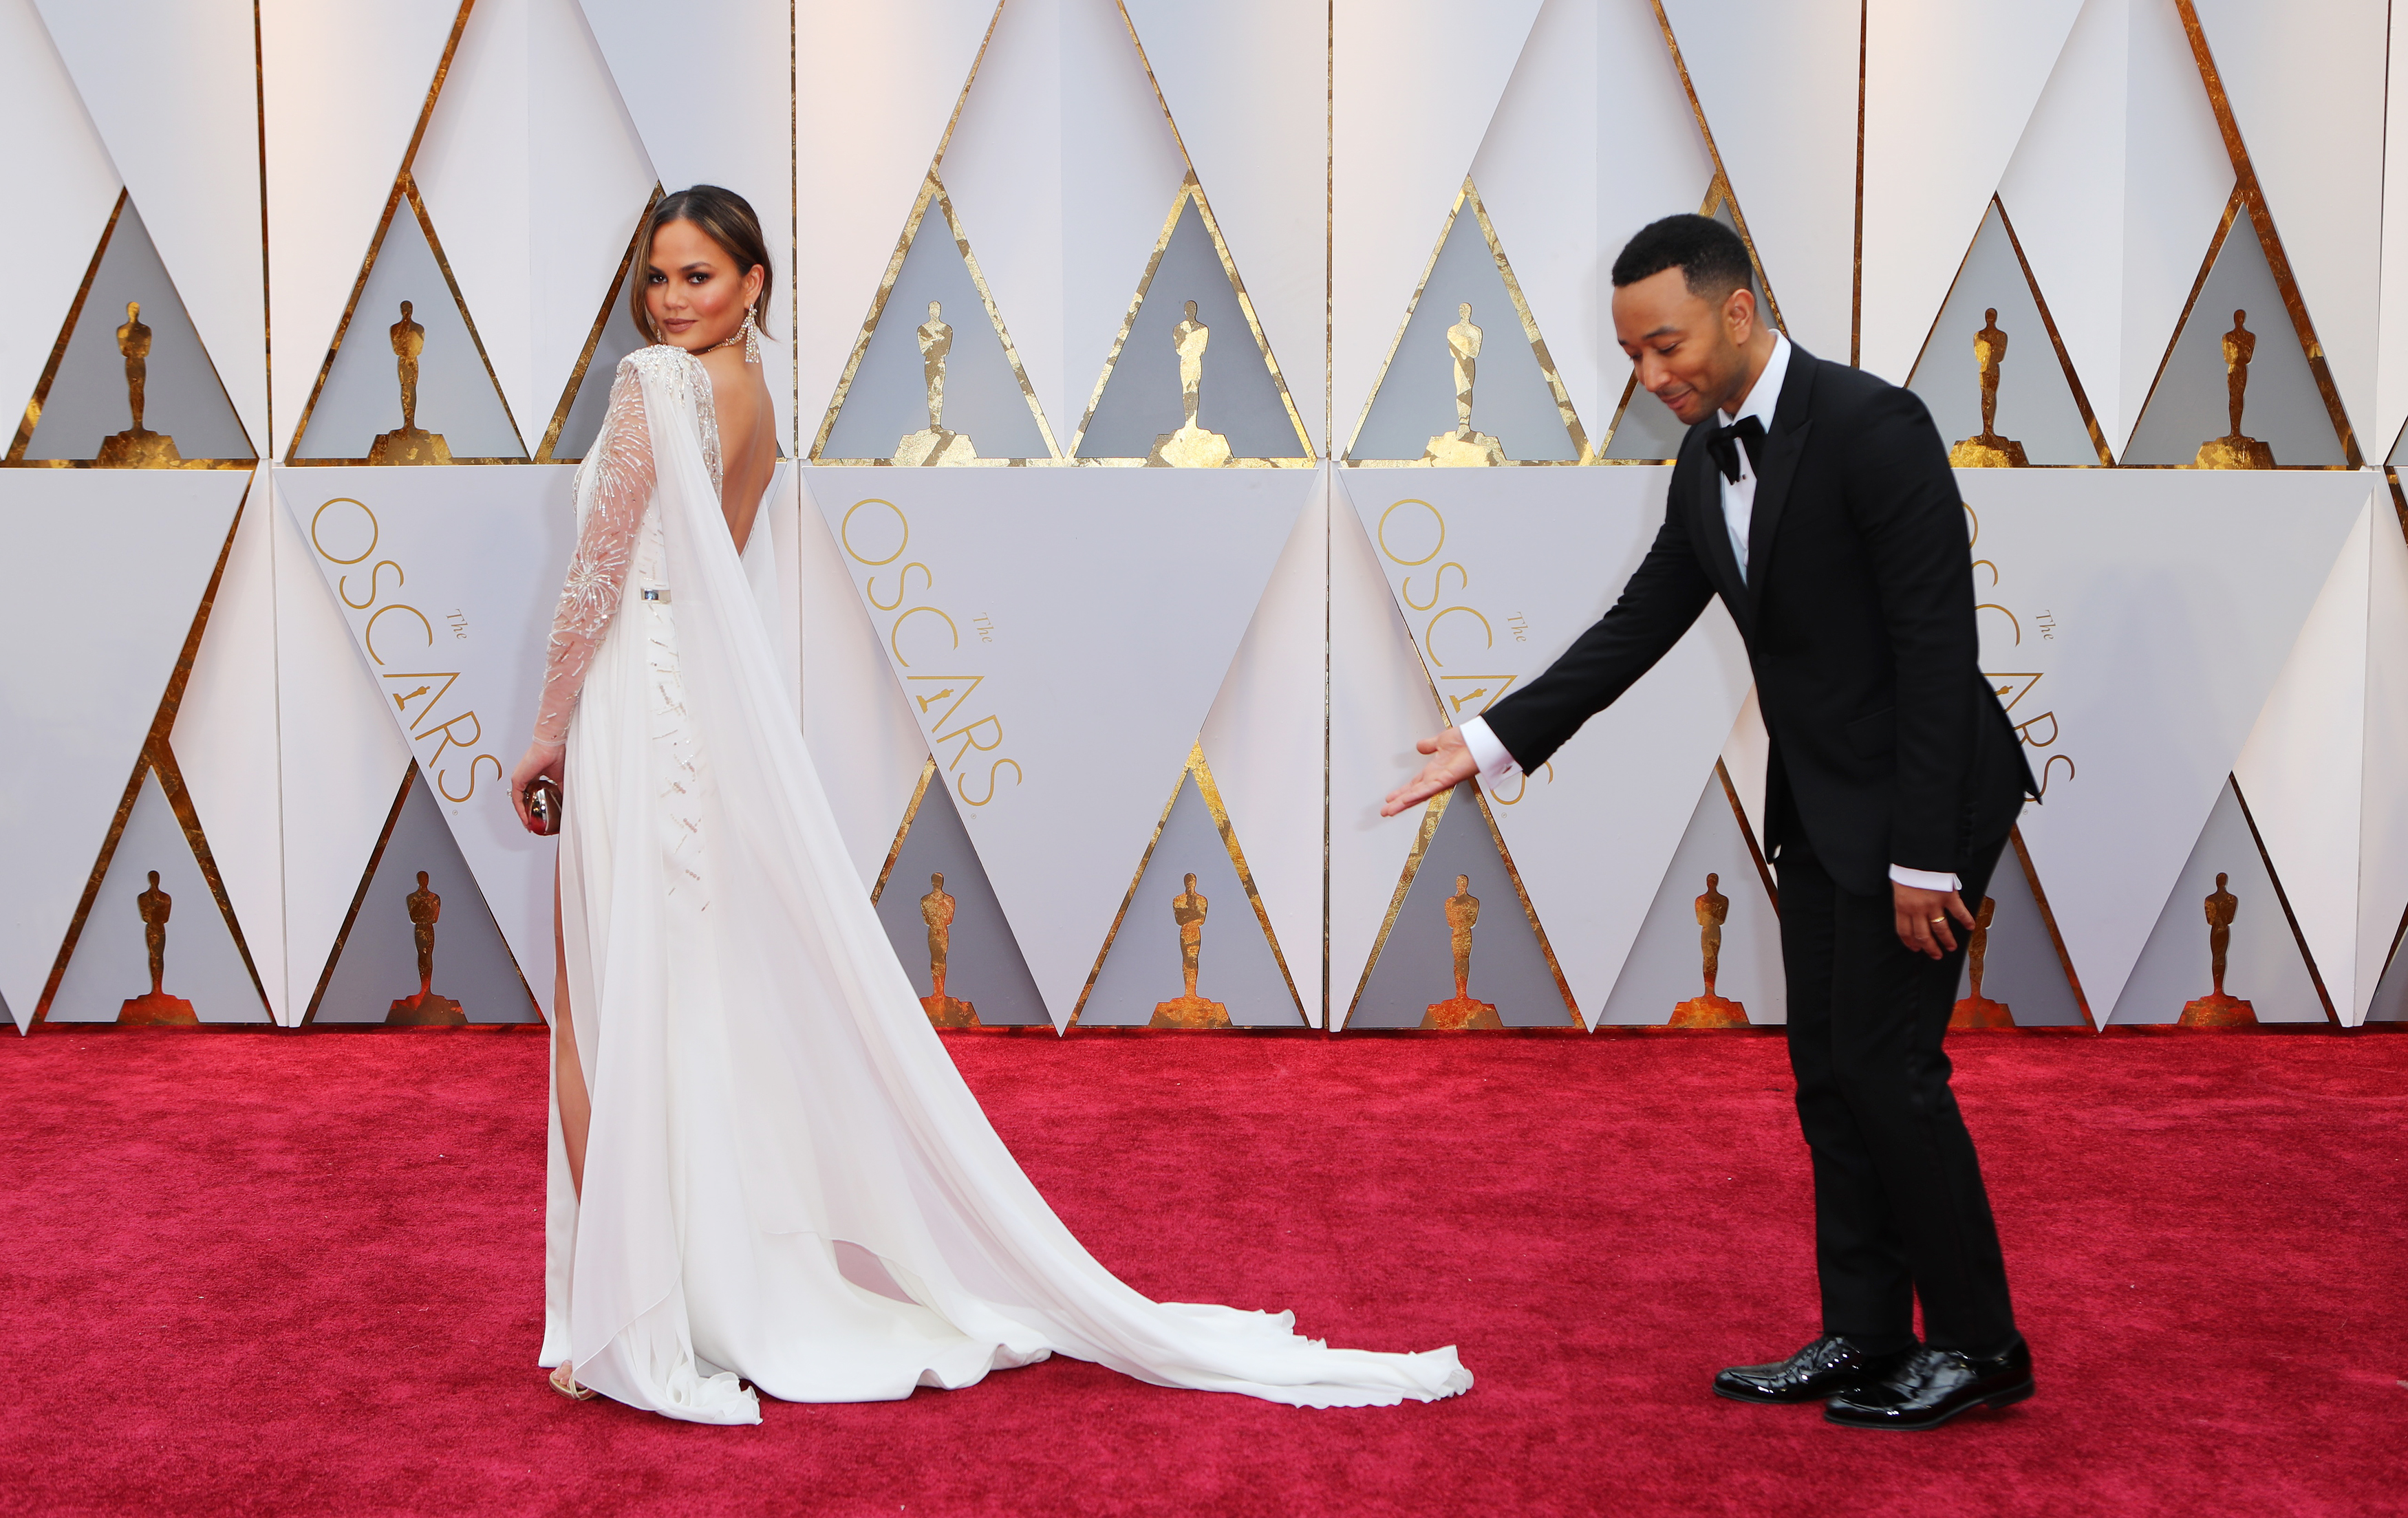 89th Academy Awards - Oscars Red Carpet Arrivals - Hollywood, California, U.S. - 26/02/17 - Chrissy Teigen and John Legend. REUTERS/Mike Blake - RTS10GMG